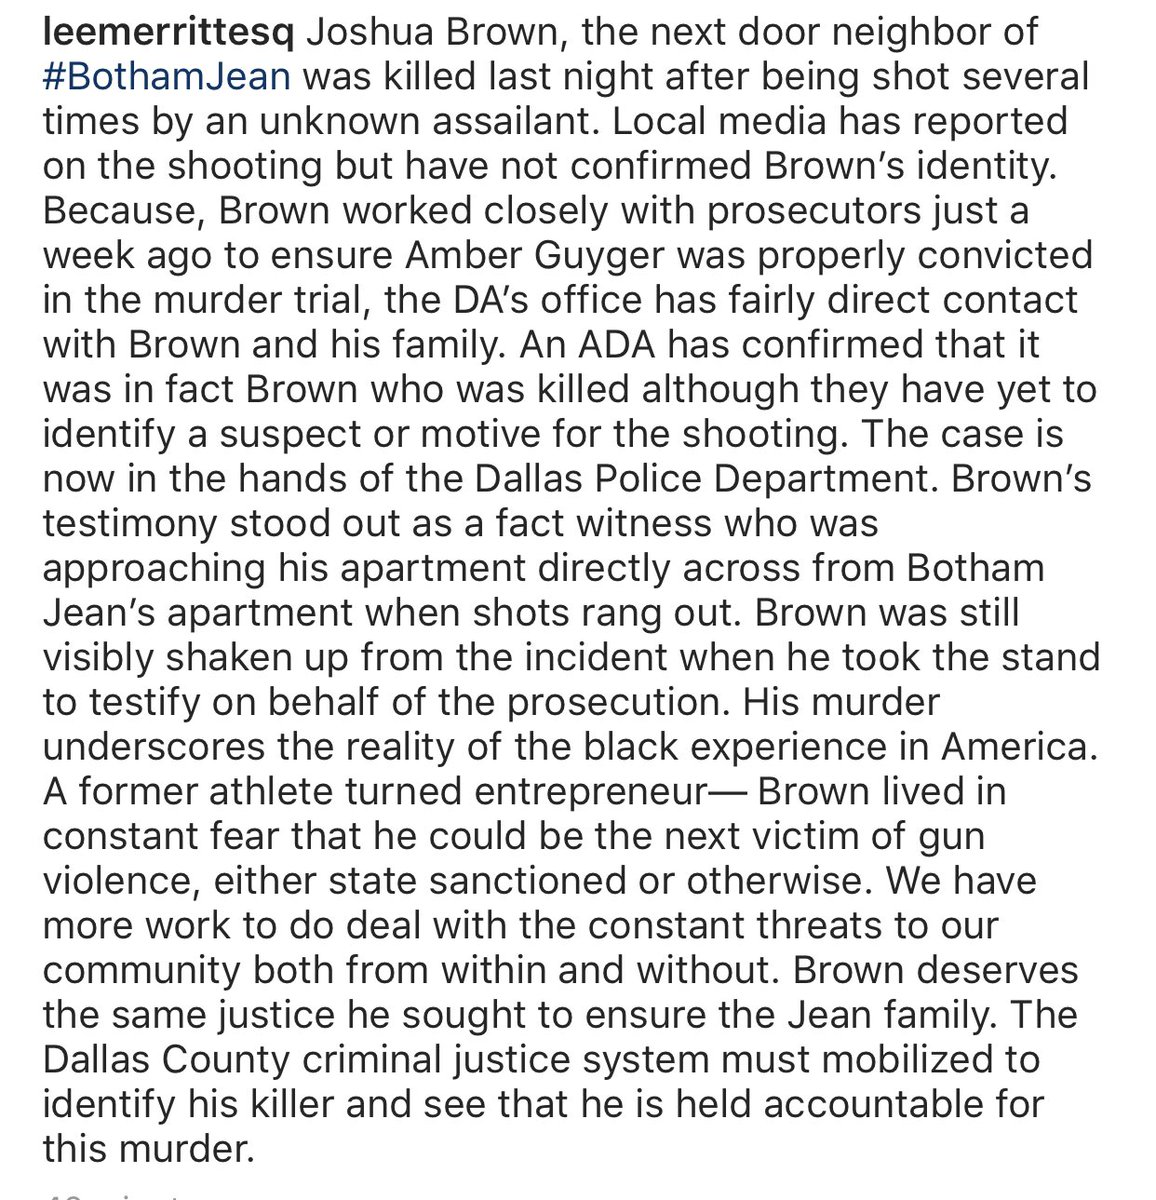 I just spoke with Joshua Browns mother. She is devastated. We all are. Joshua Brown was key witness in the murder of Botham Jean that helped put Amber Guyger away. We need answers.